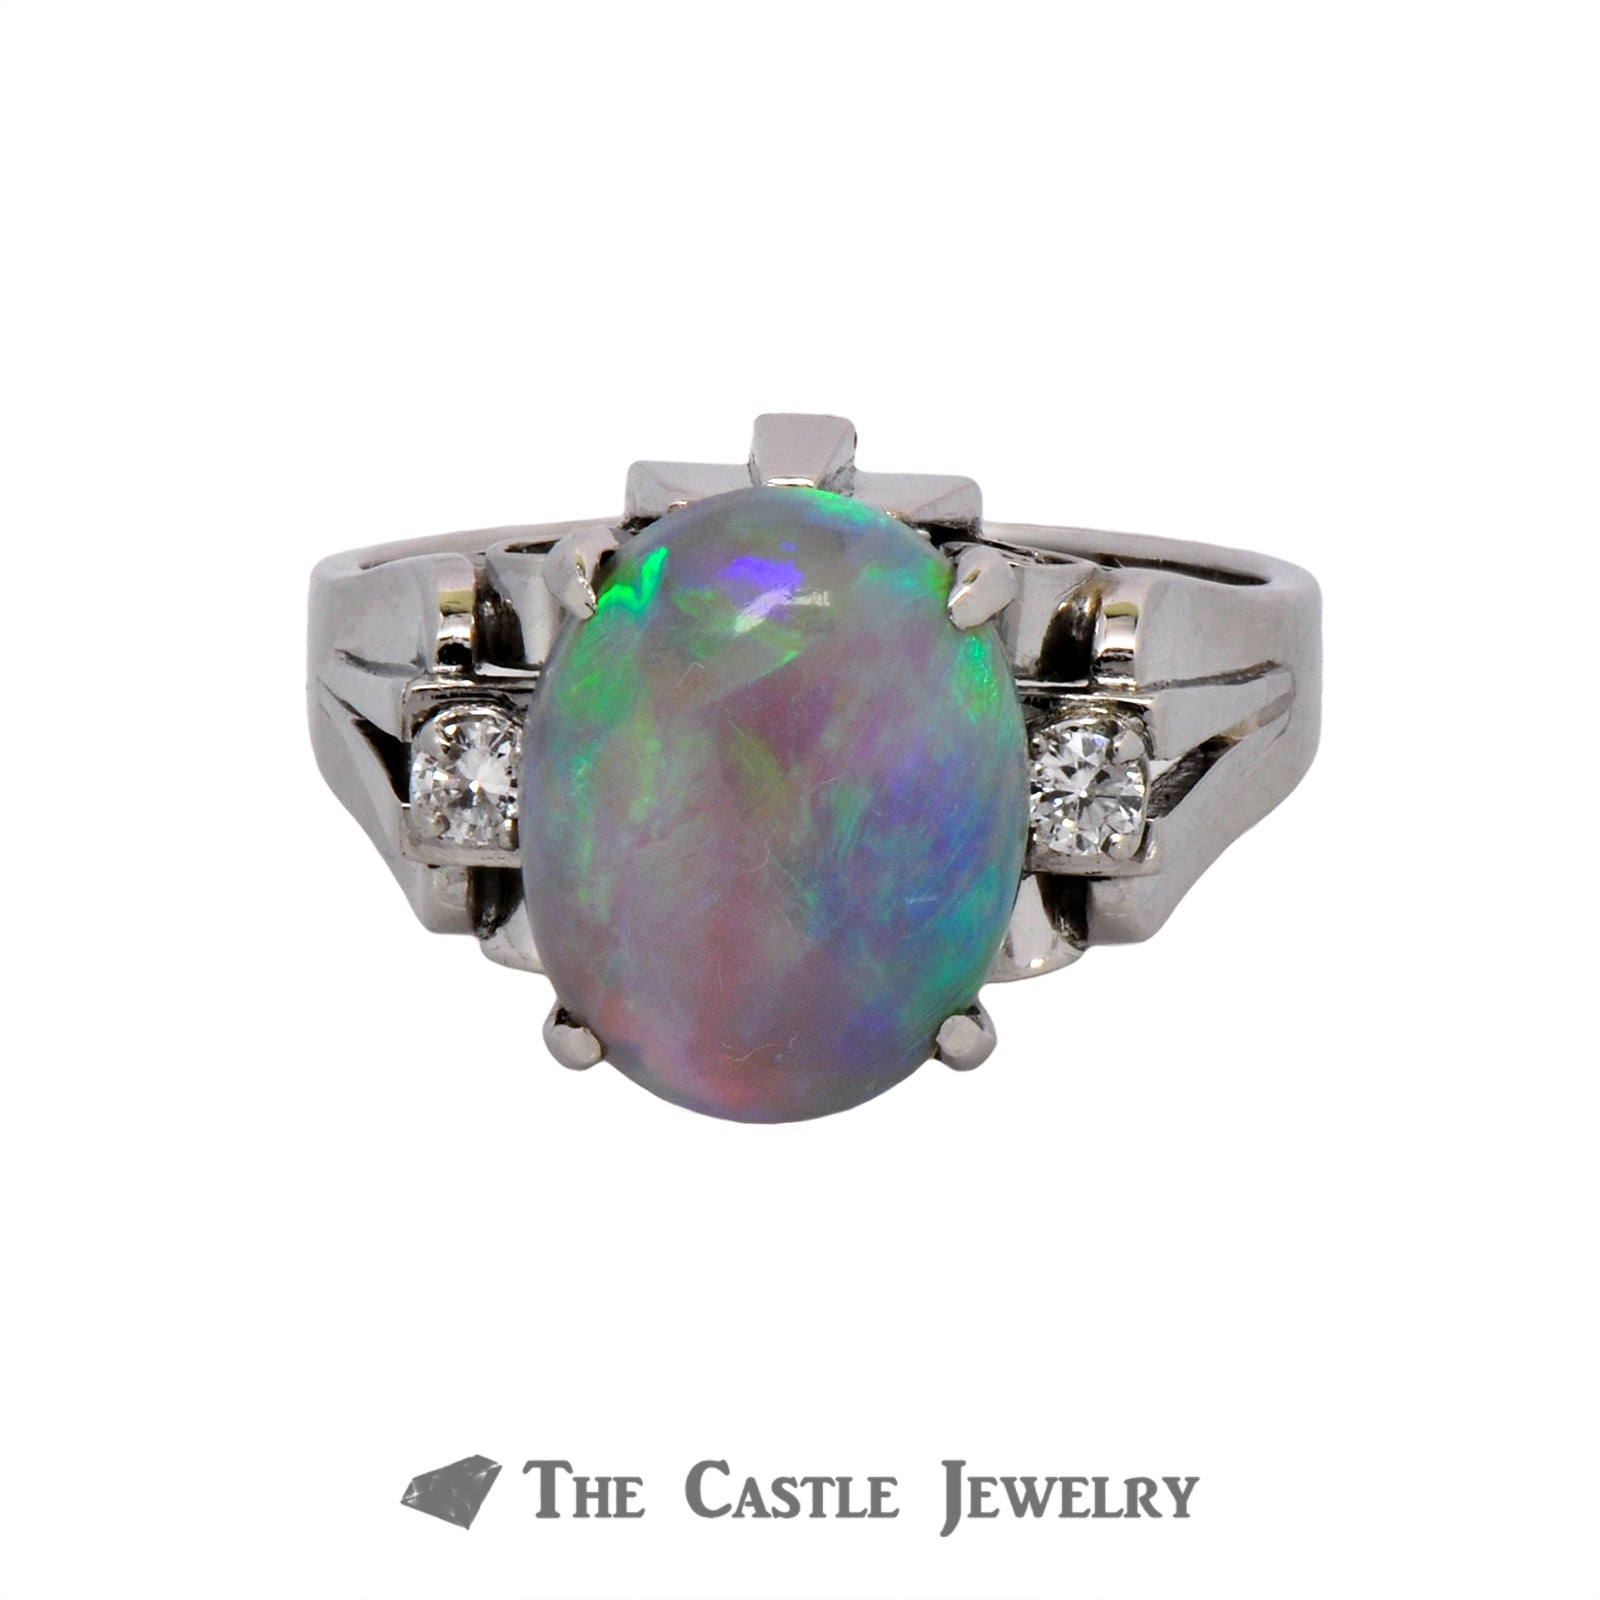 Vintage Opal Ring with Diamond Accents Crafted in a Platinum Cathedral Mounting